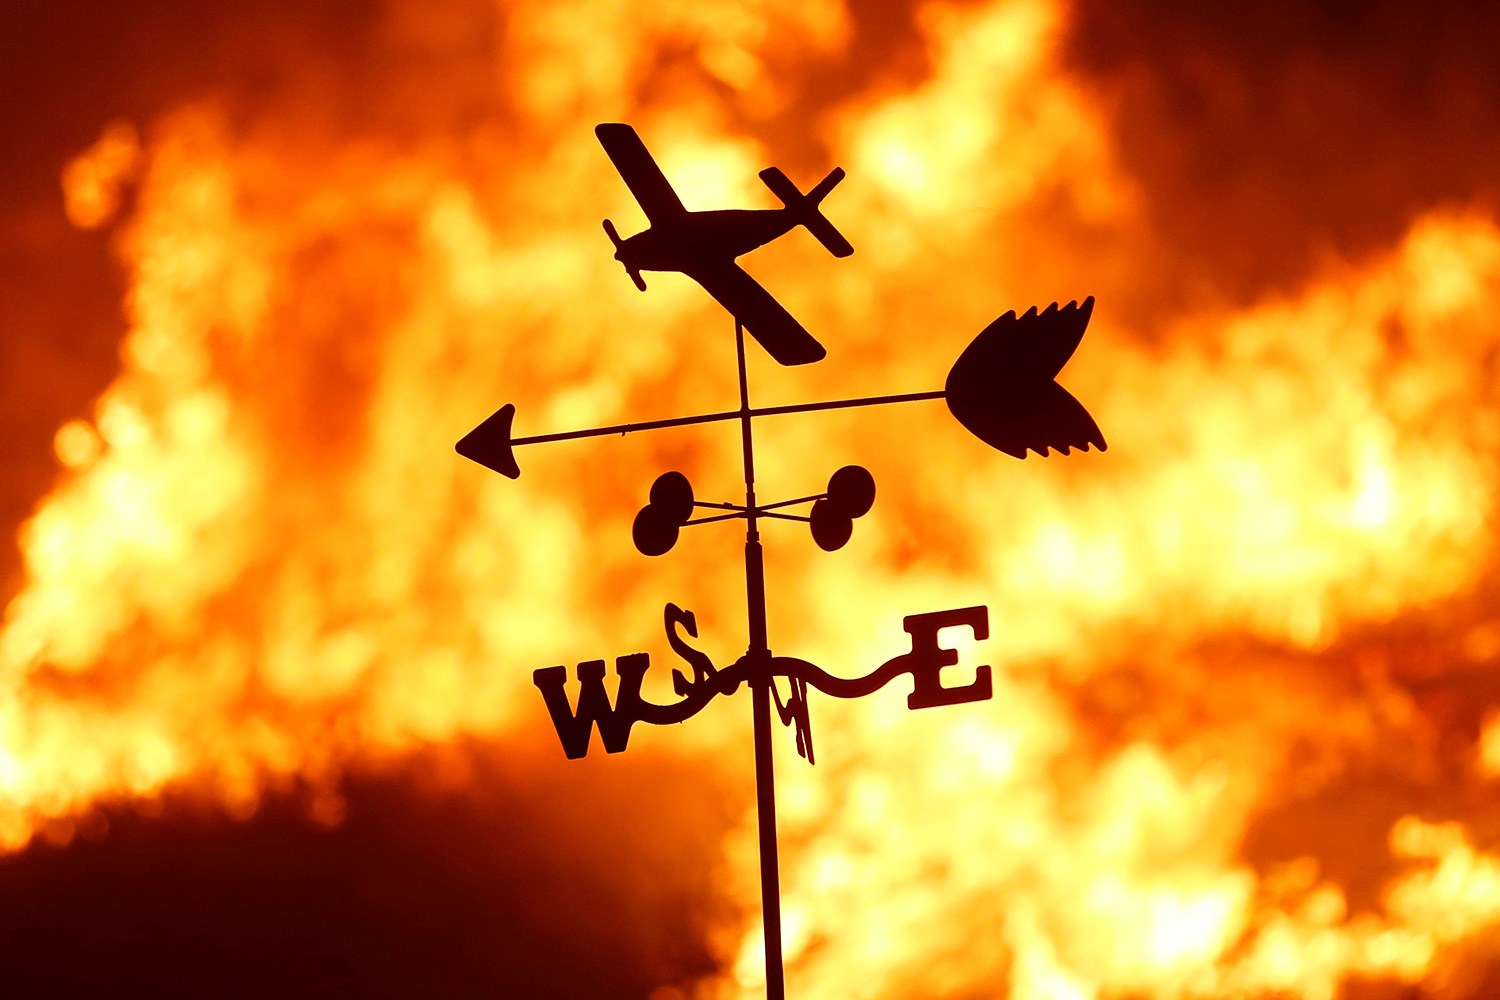 "A weather vane is pictured on a ranch during the Creek Fire in the San Fernando Valley north of Los Angeles, in Sylmar, California on December 5, 2017. Picture shows a thin metal toy-like vain with a plane, and arrow and a ""NESW"" directional indicator silhouetted against a burning fire. REUTERS/Jonathan Alcorn"